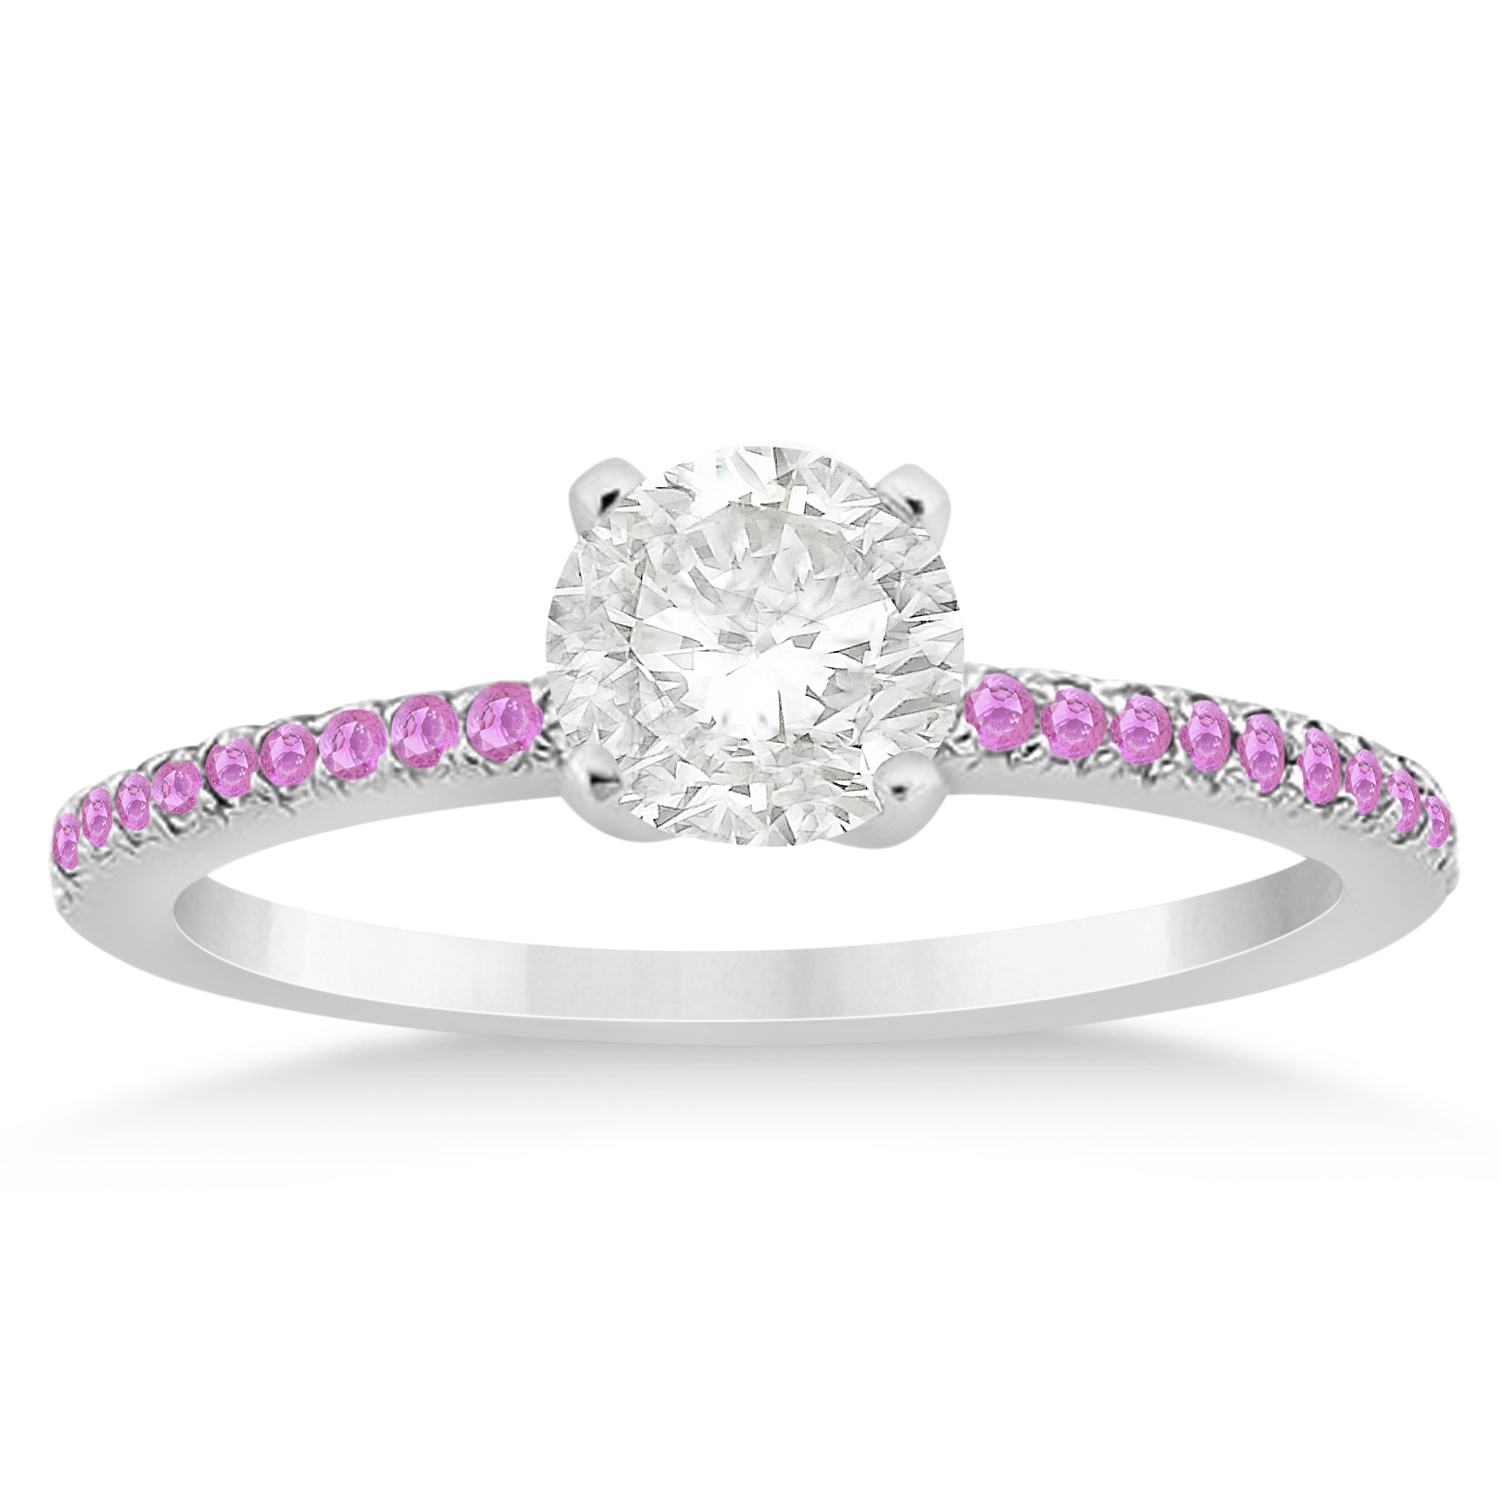 pink sapphire accented engagement ring setting 14k white